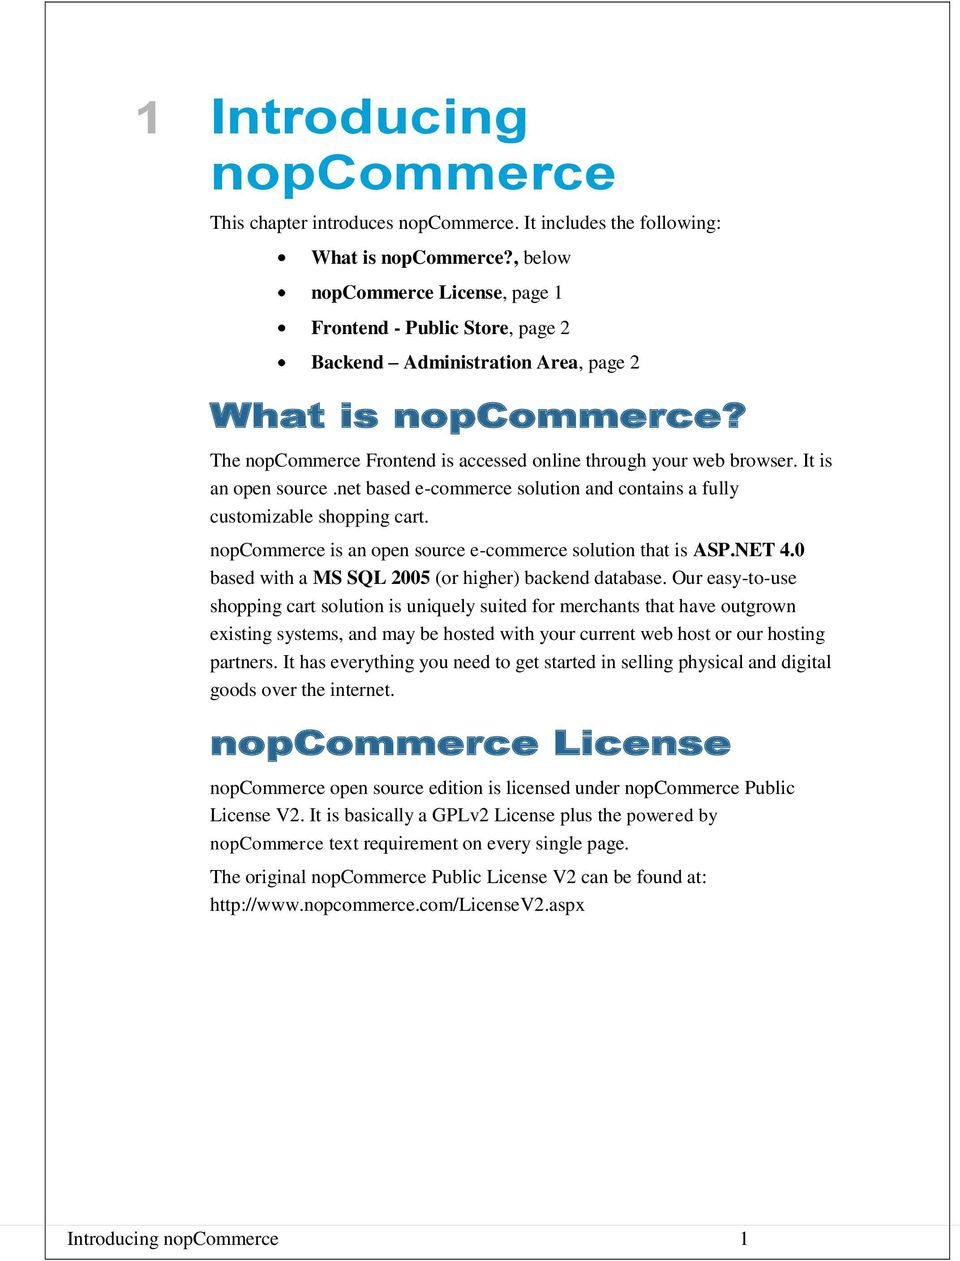 It is an open source.net based e-commerce solution and contains a fully customizable shopping cart. nopcommerce is an open source e-commerce solution that is ASP.NET 4.